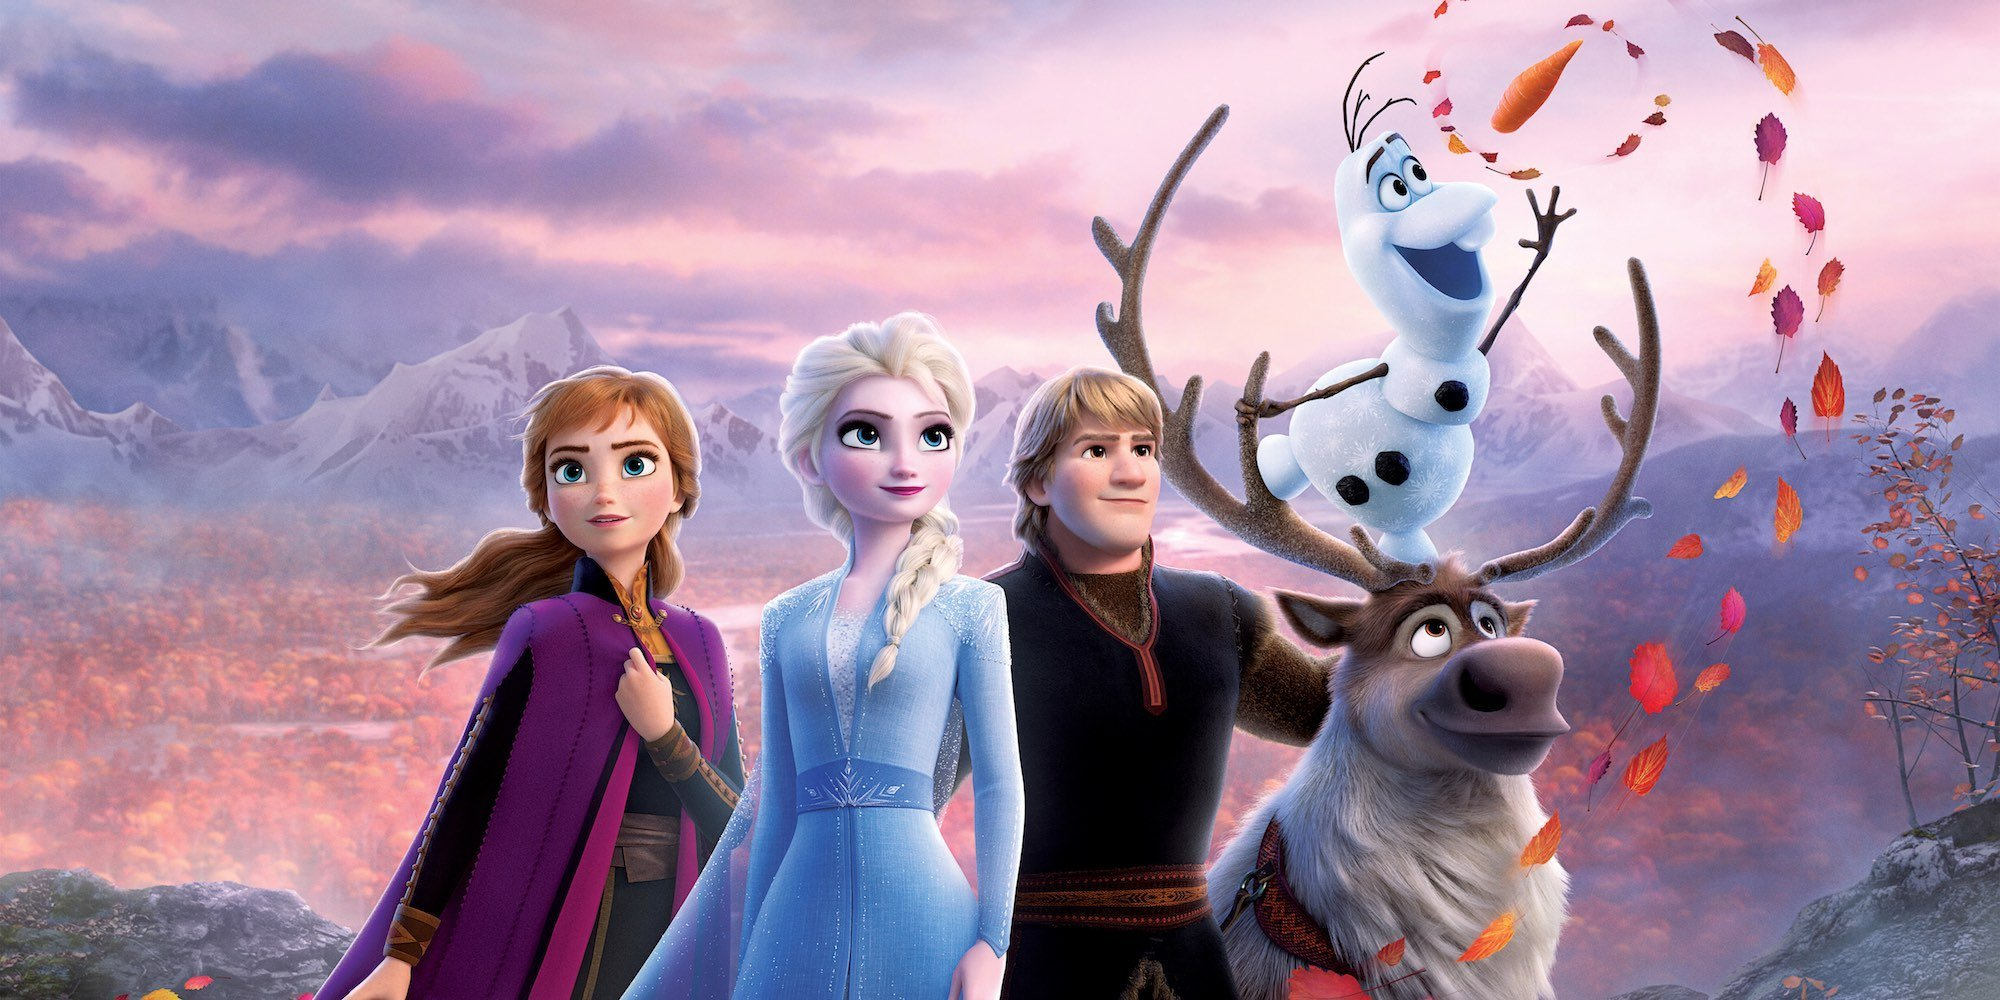 Frozen 2 DVD & 4K Blu-ray Release Date And Details